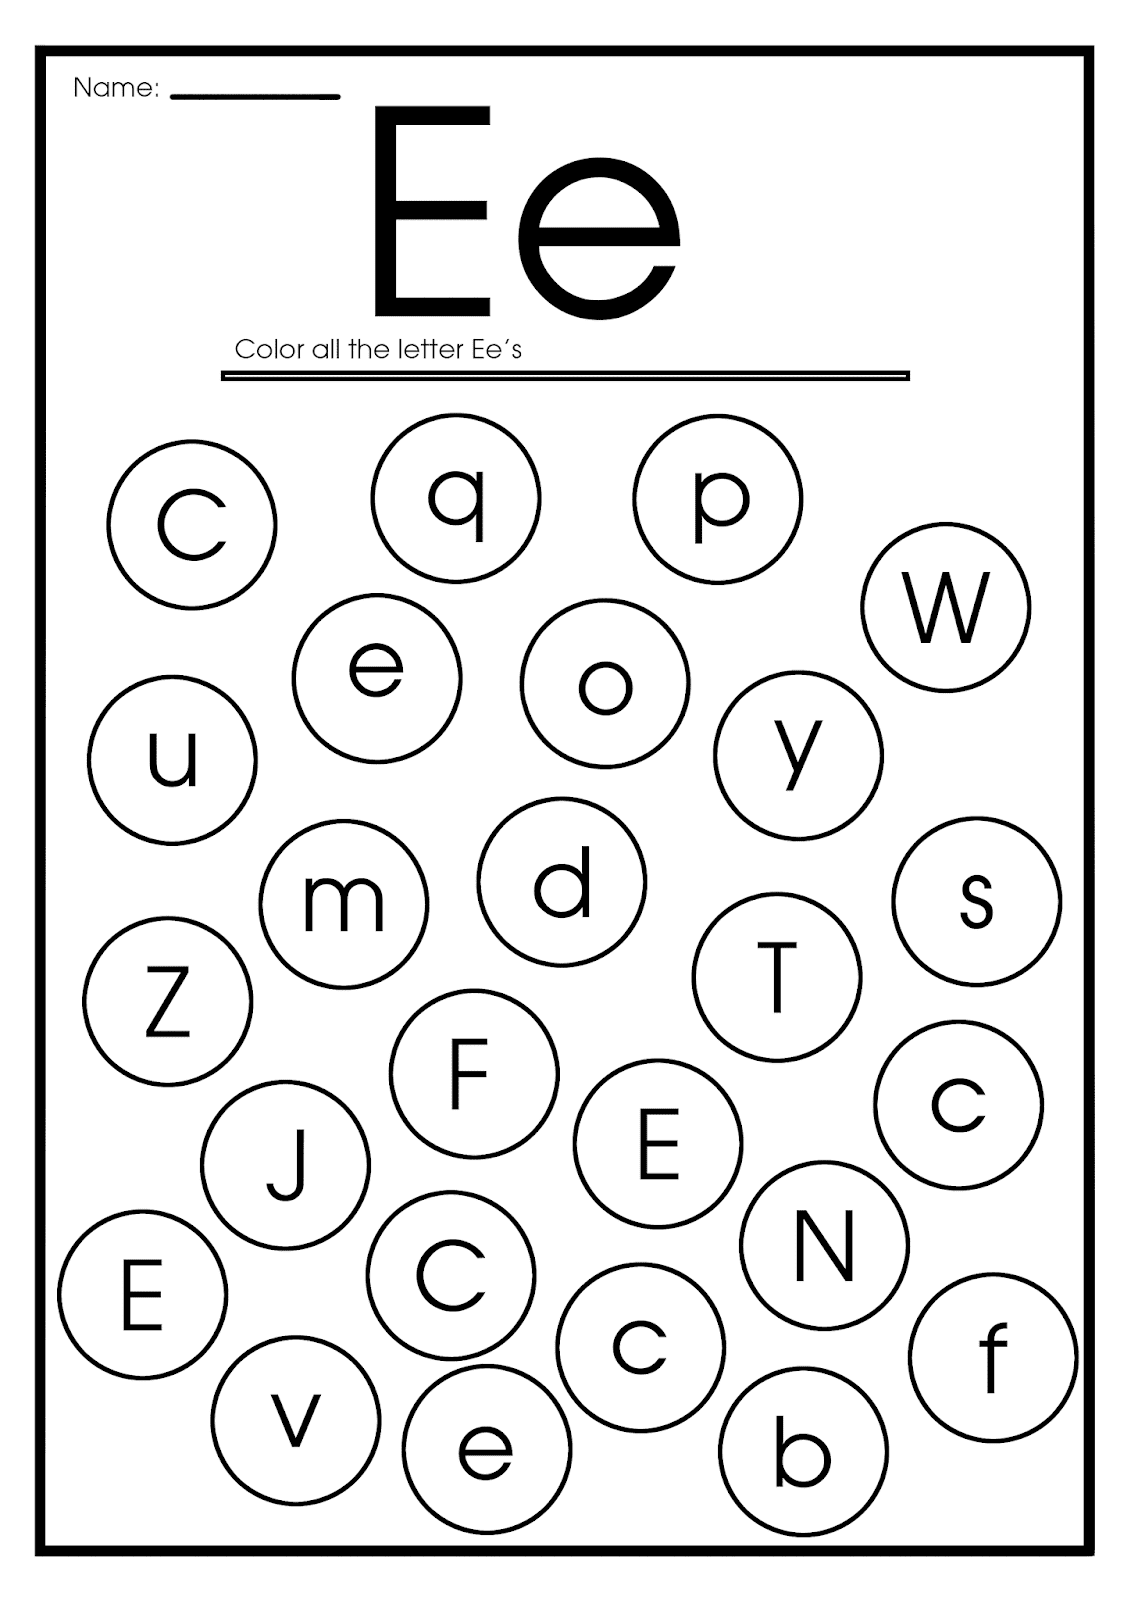 Letter E Worksheets, Flash Cards, Coloring Pages pertaining to Letter E Worksheets Printable